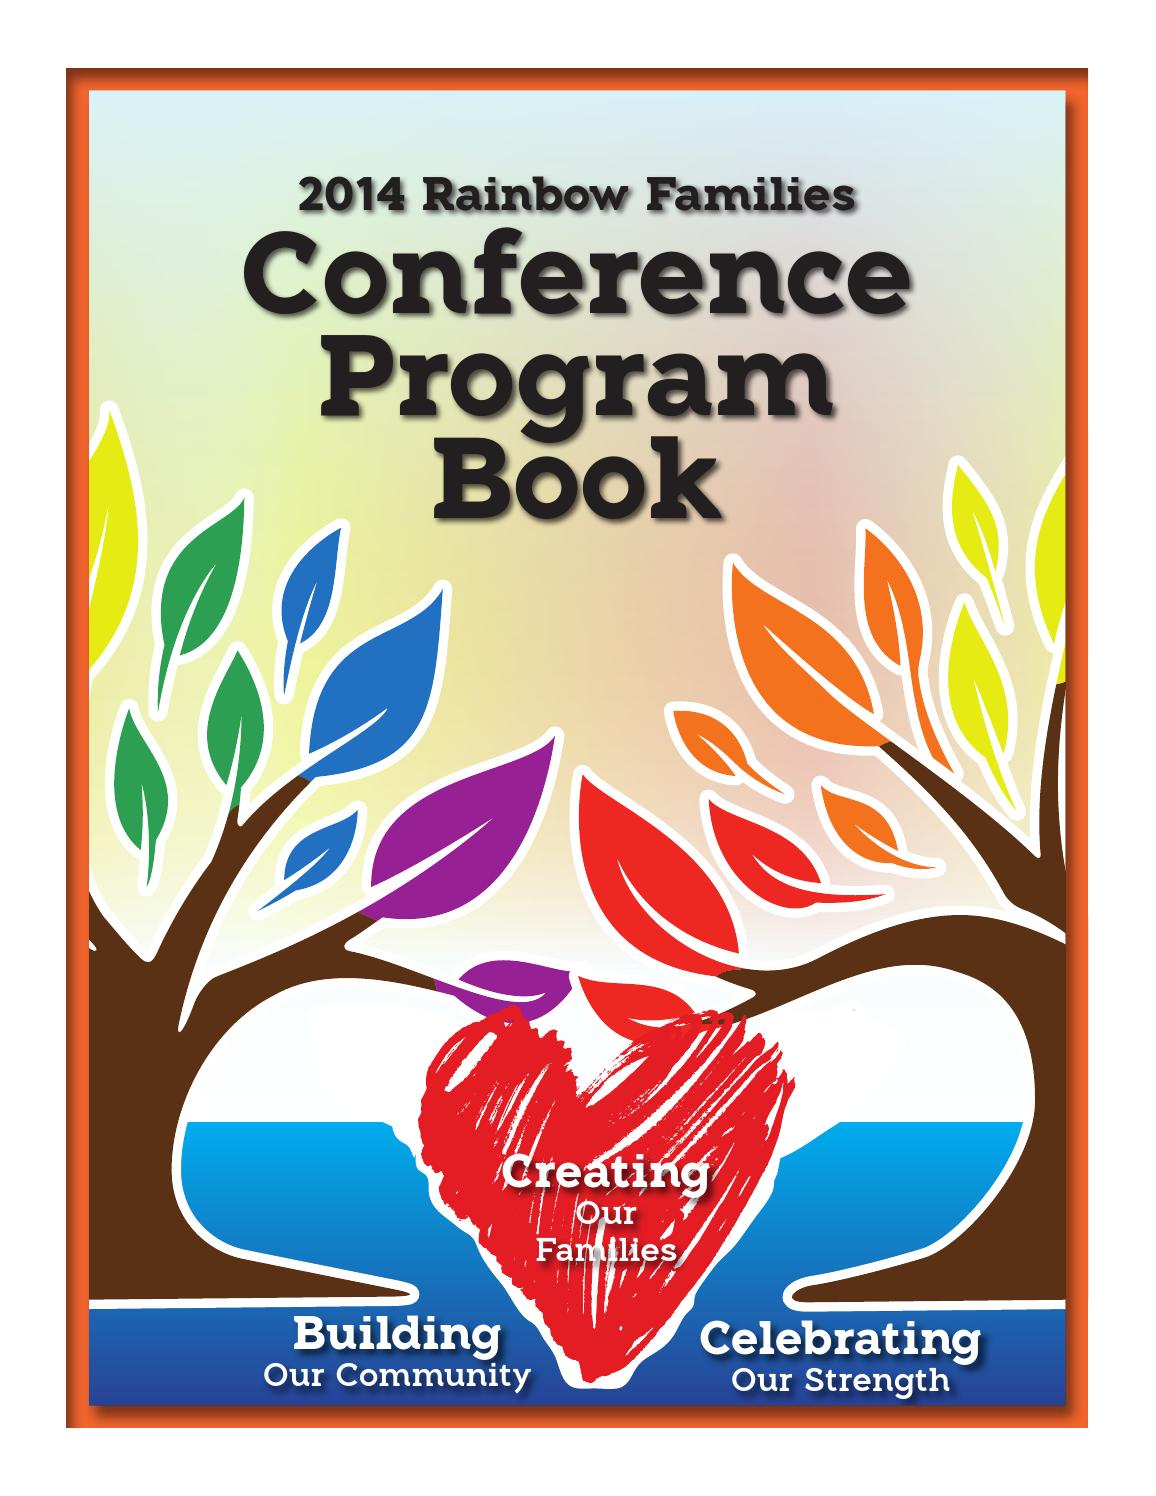 Rainbow Families 2014 Conference Program Book by 202design ...